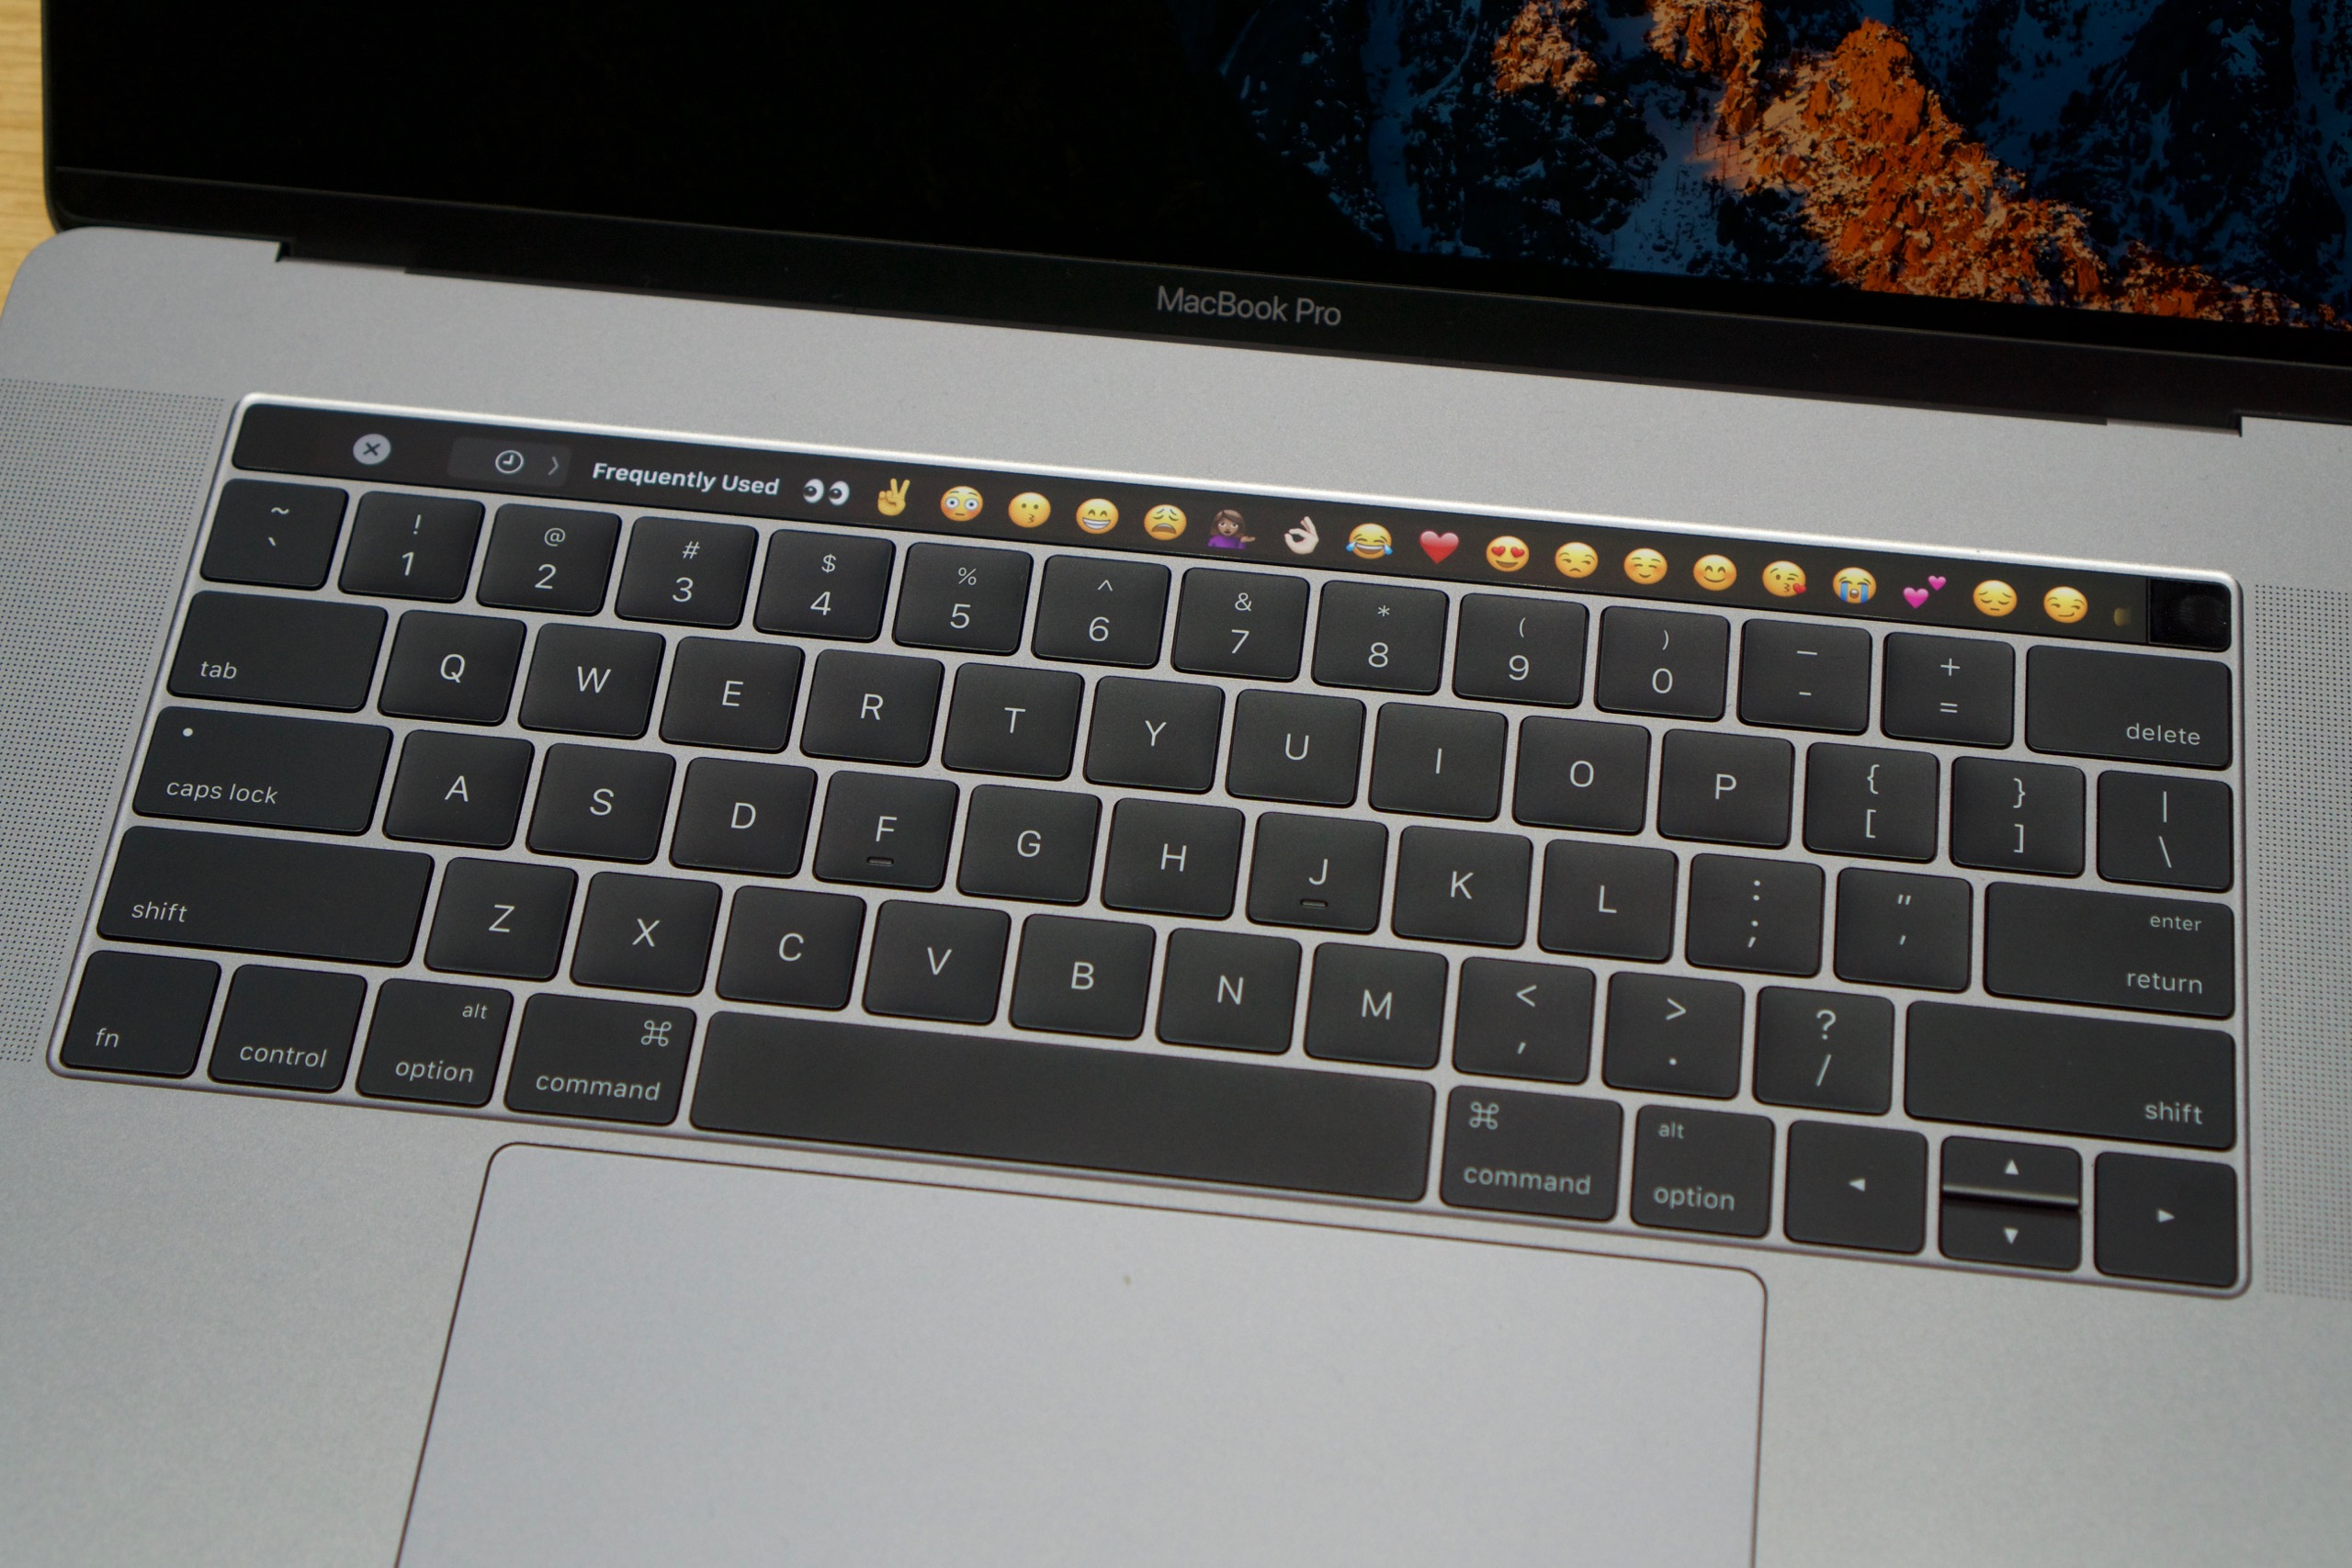 The Touch Bar is going to draw some power, but its impact should be relatively limited.